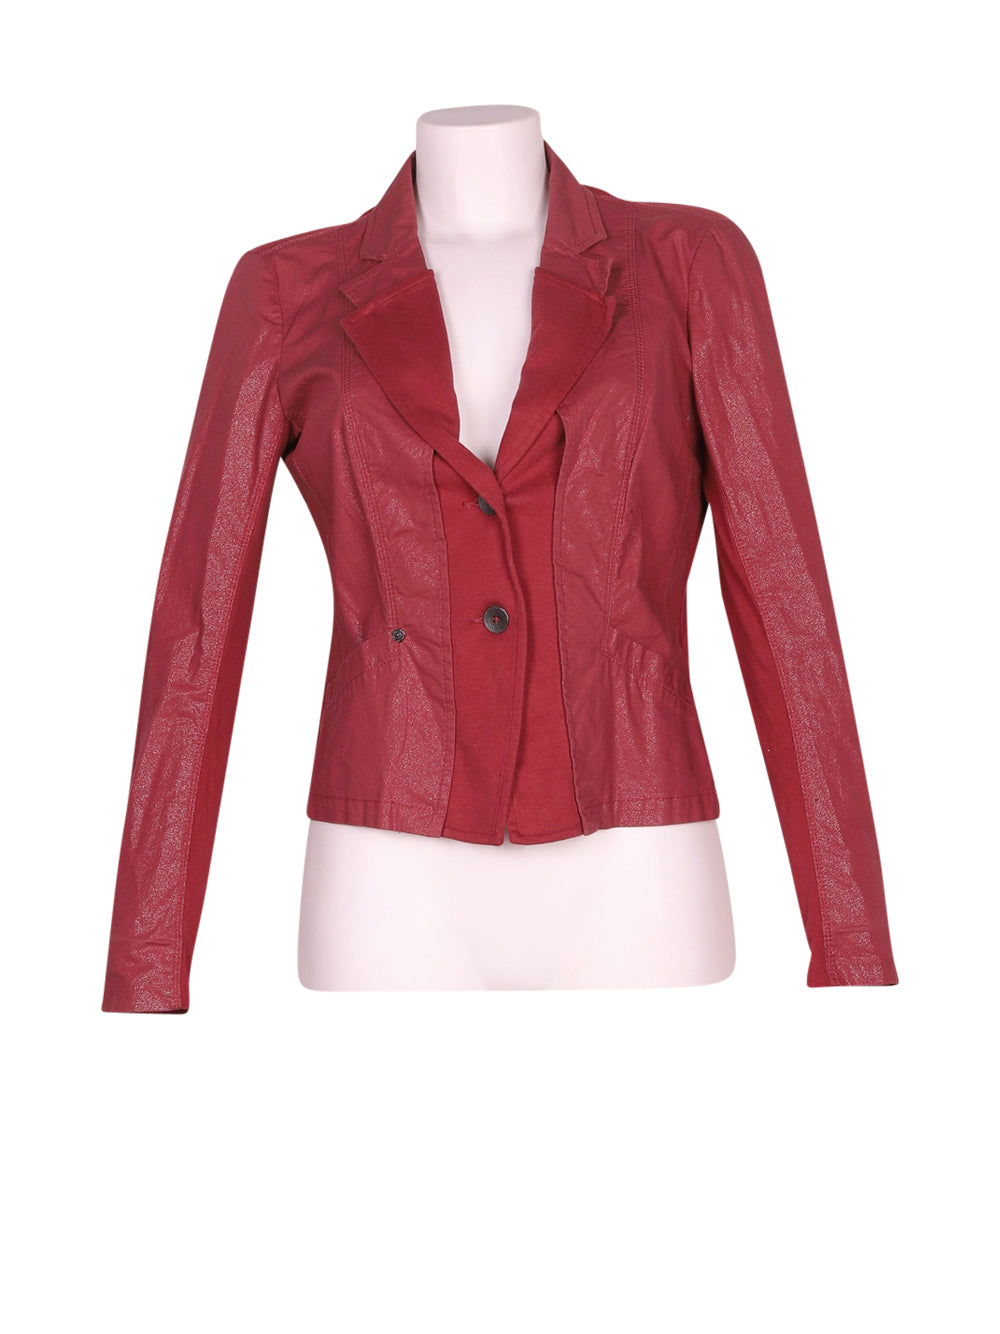 Front photo of Preloved sandwich Bordeaux Woman's jacket - size 10/M